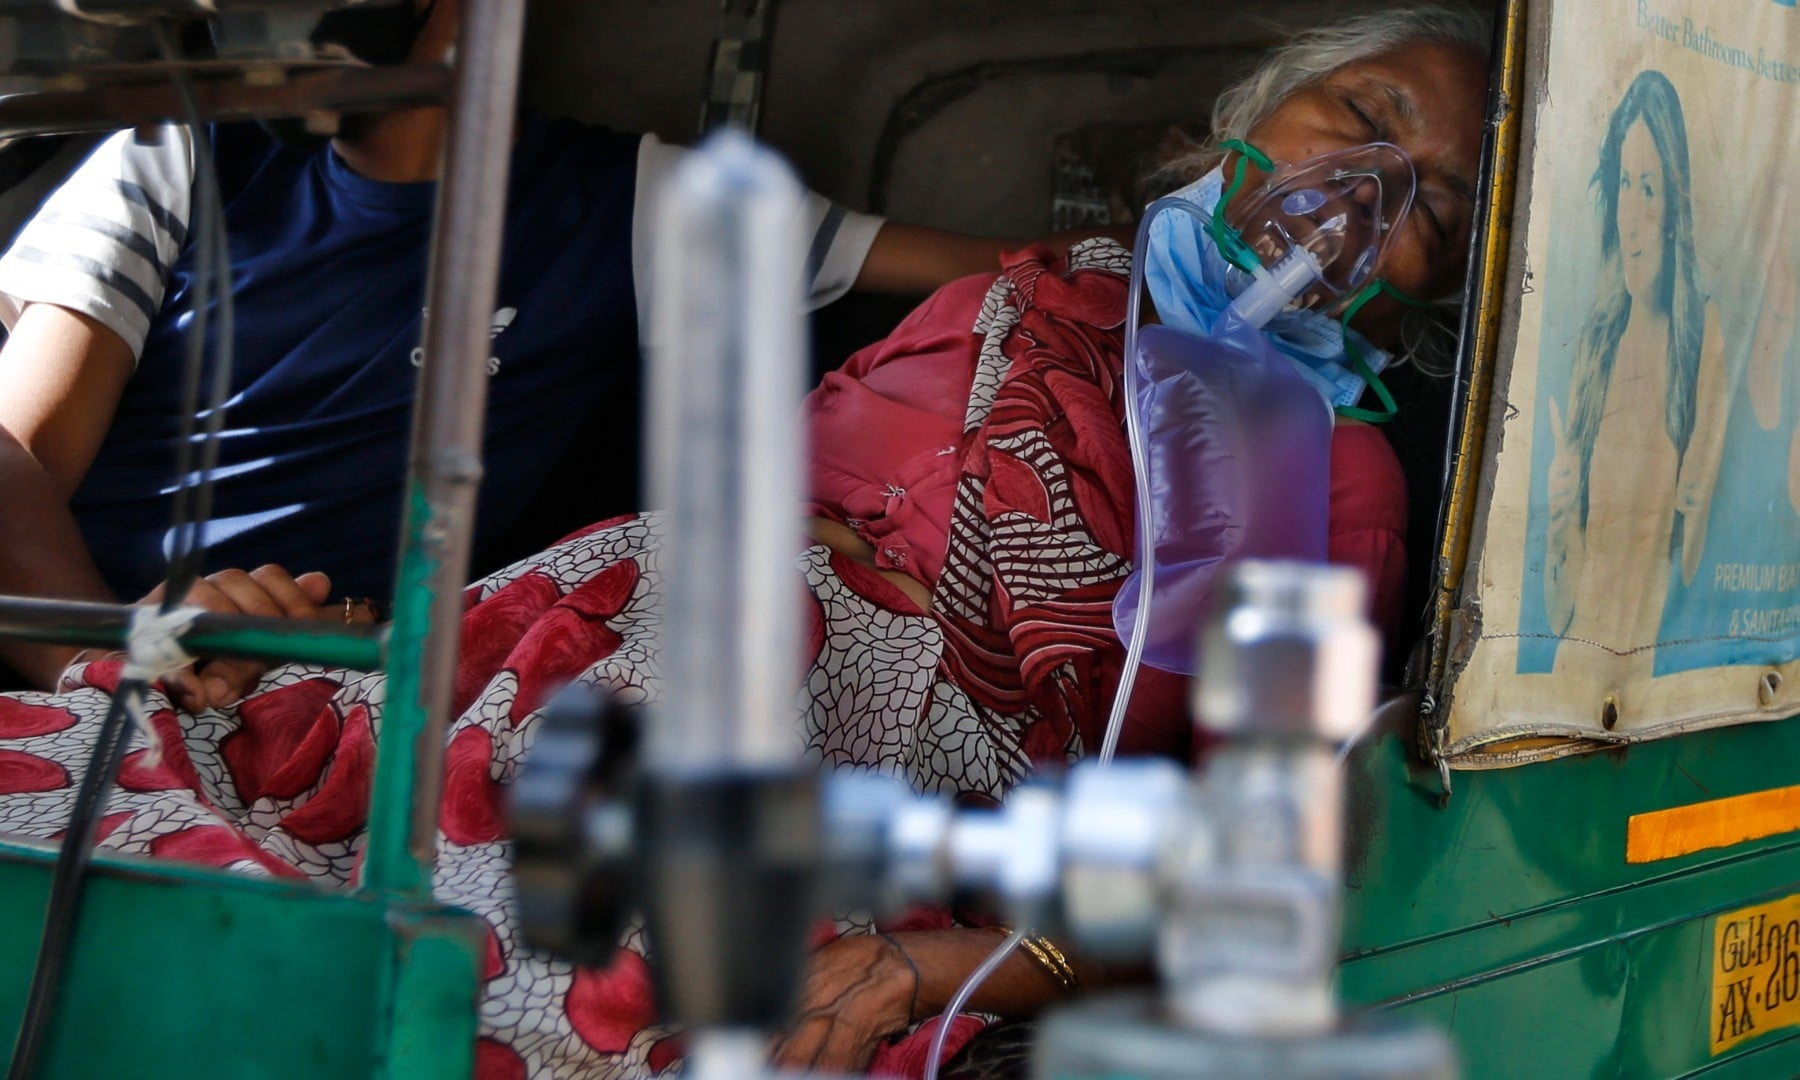 A Covid-19 patient breathes with the help of an oxygen mask and waits inside an auto rickshaw to be attended to and admitted to a dedicated coronavirus government hospital in Ahmedabad on April 17. — AP